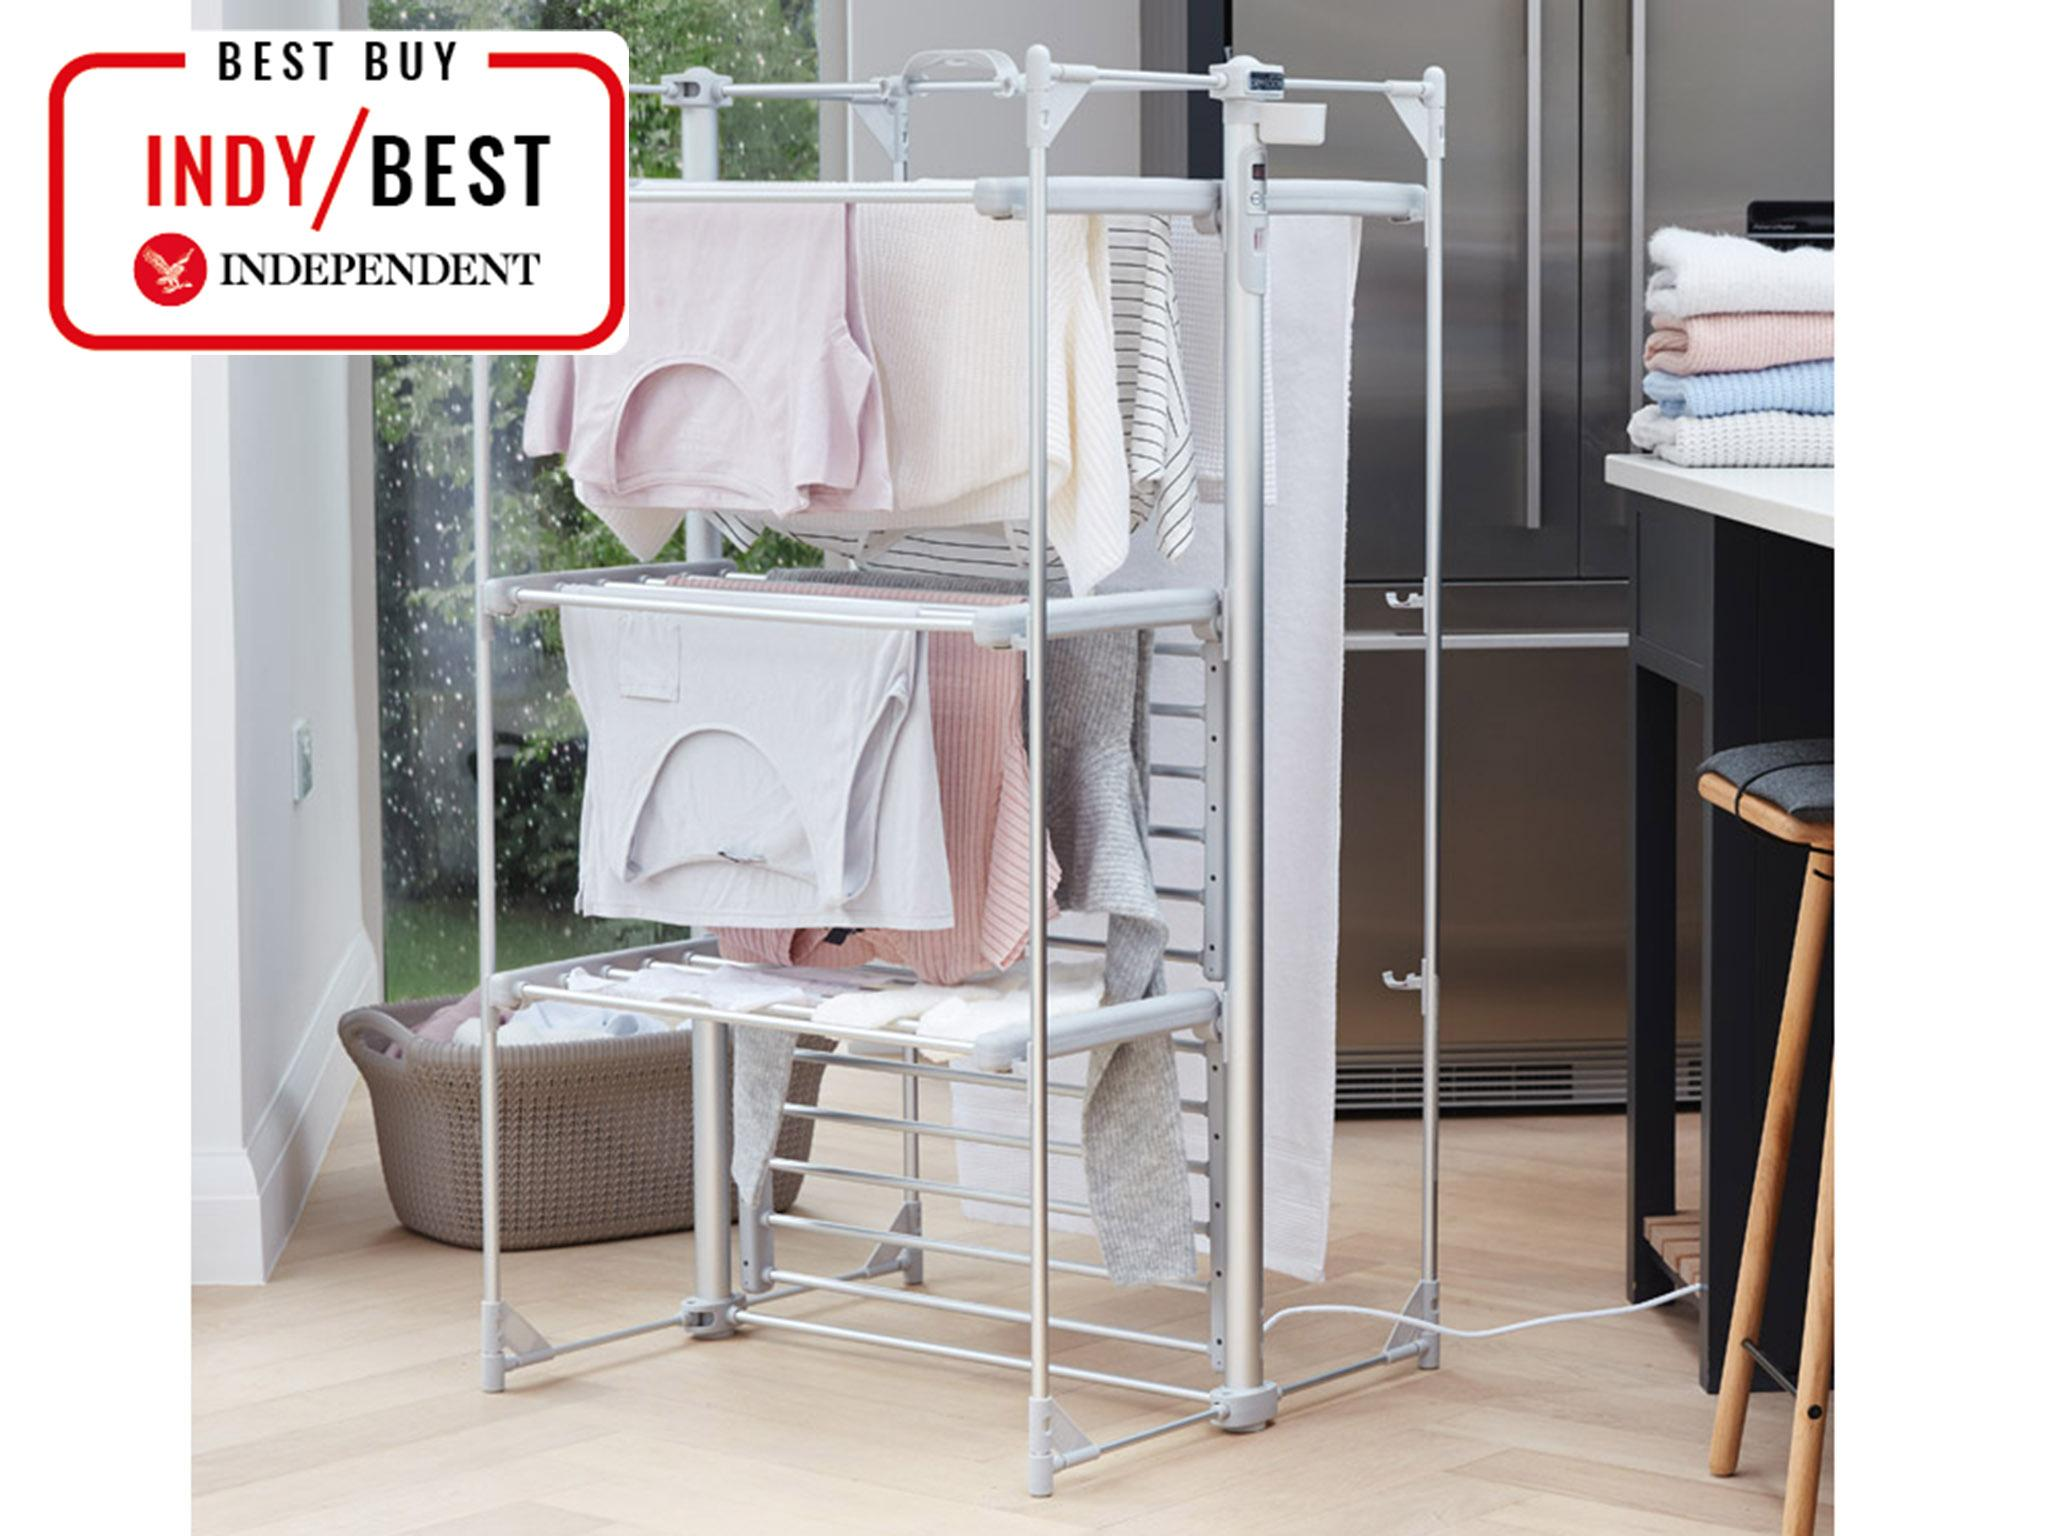 10 Best Clothes Airers And Drying Racks The Independent